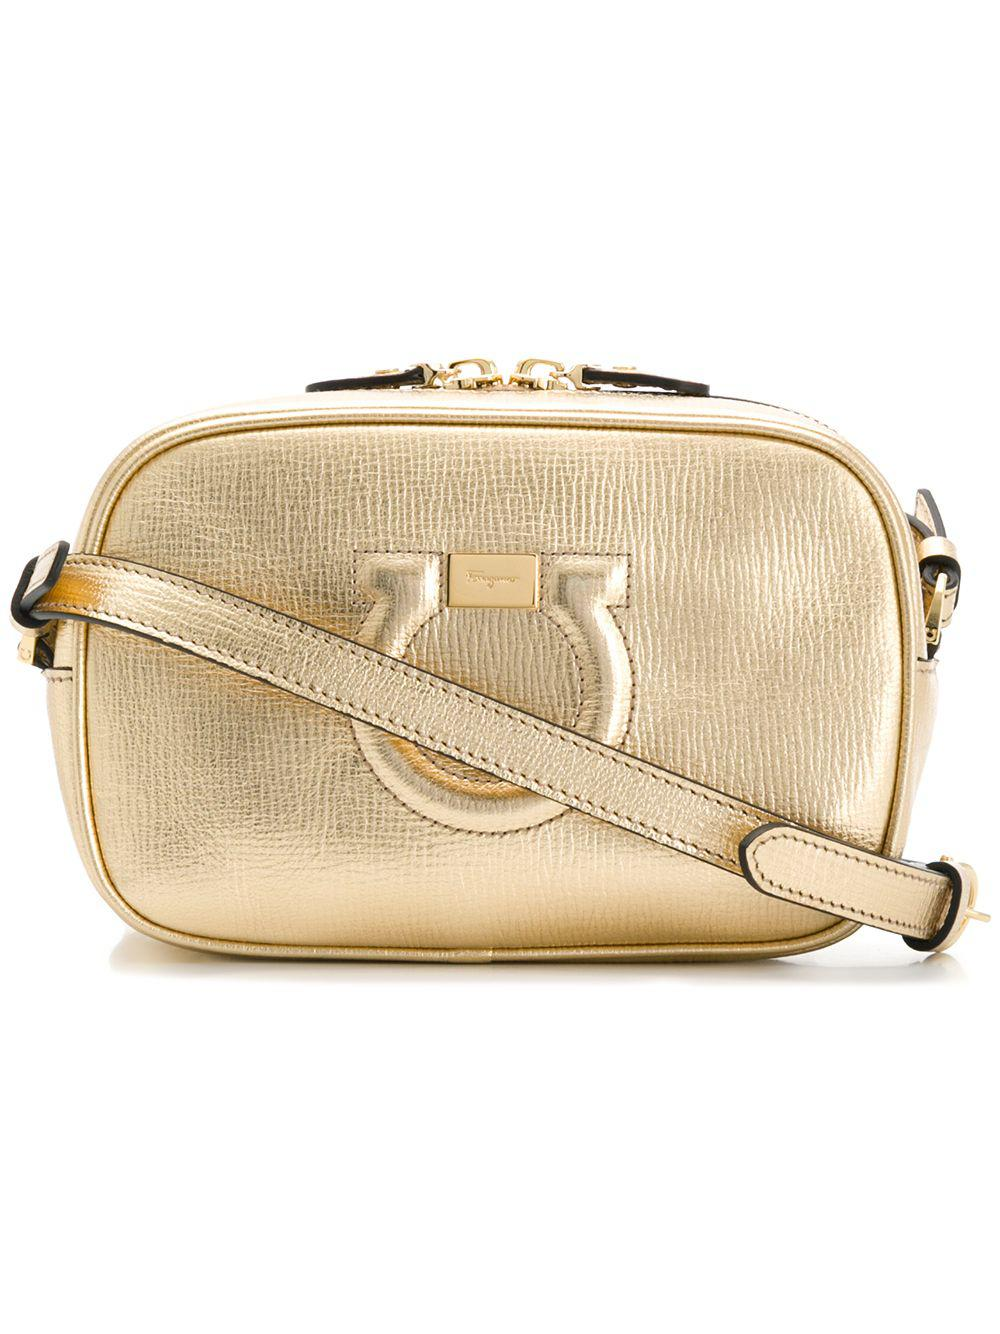 daa7b36d7 ... aeb3fef0e63 Ferragamo City Leather Shoulder Bag in Metallic - Lyst ...